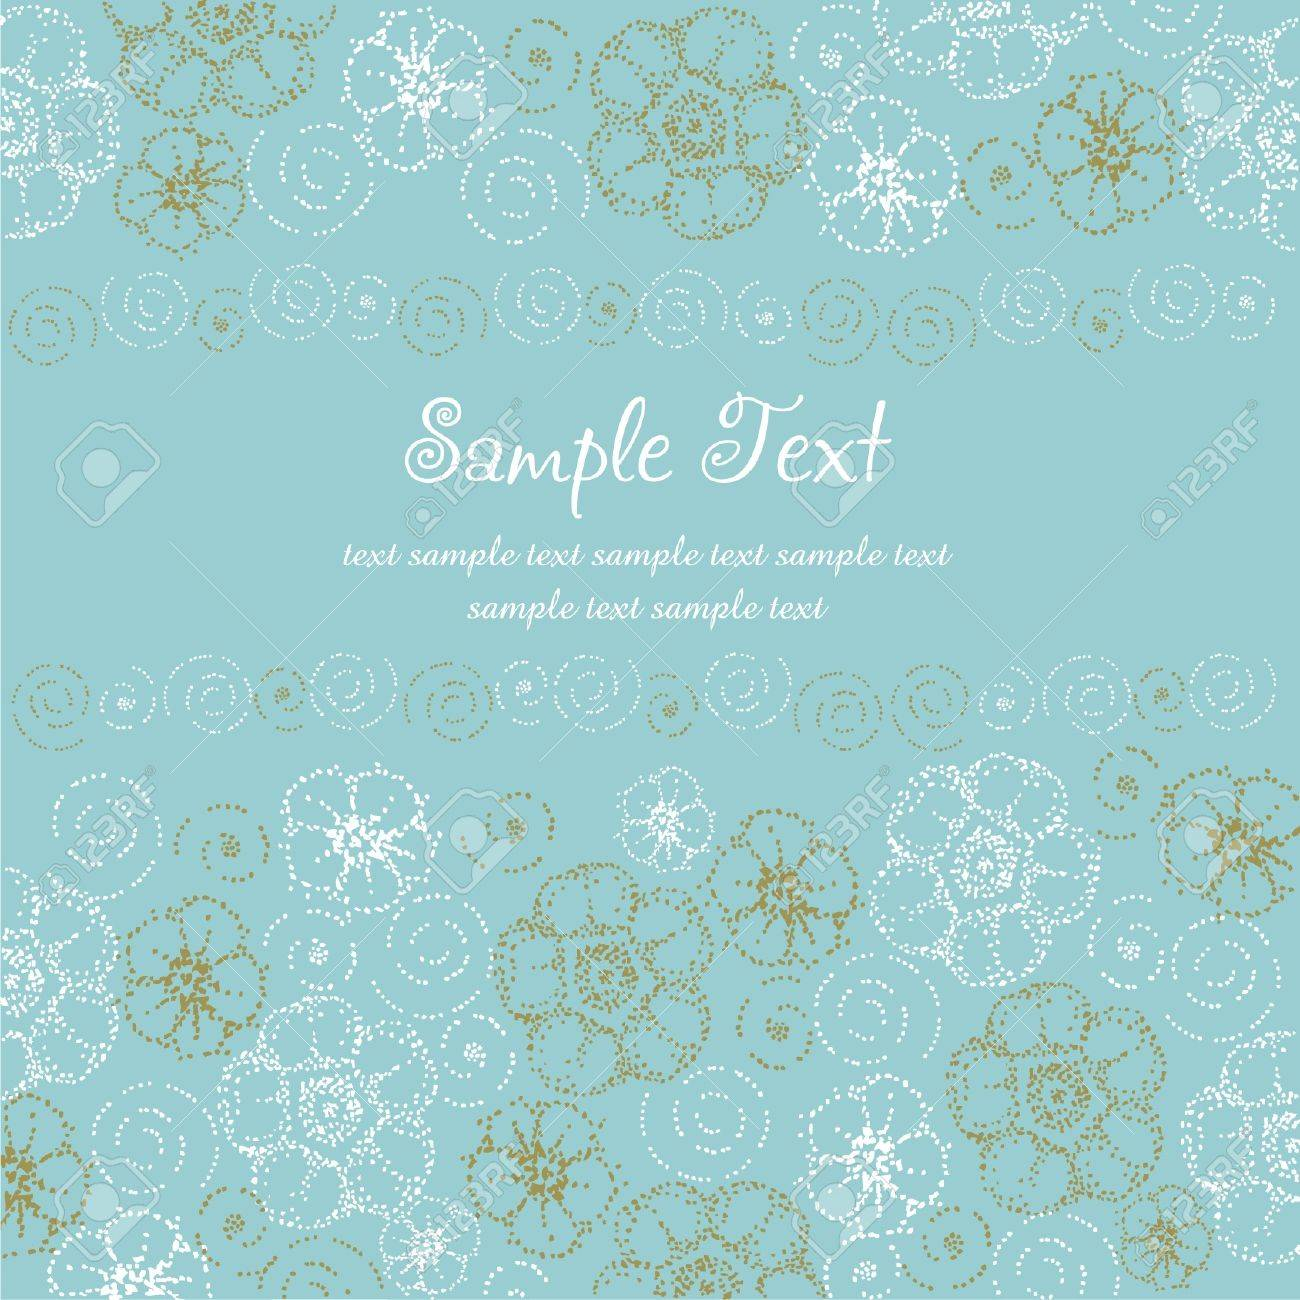 Template text background  Light gentle template for design greeting card with place for your text with colorful stylized fantasy dot flowers and spirals Stock Vector - 15497844